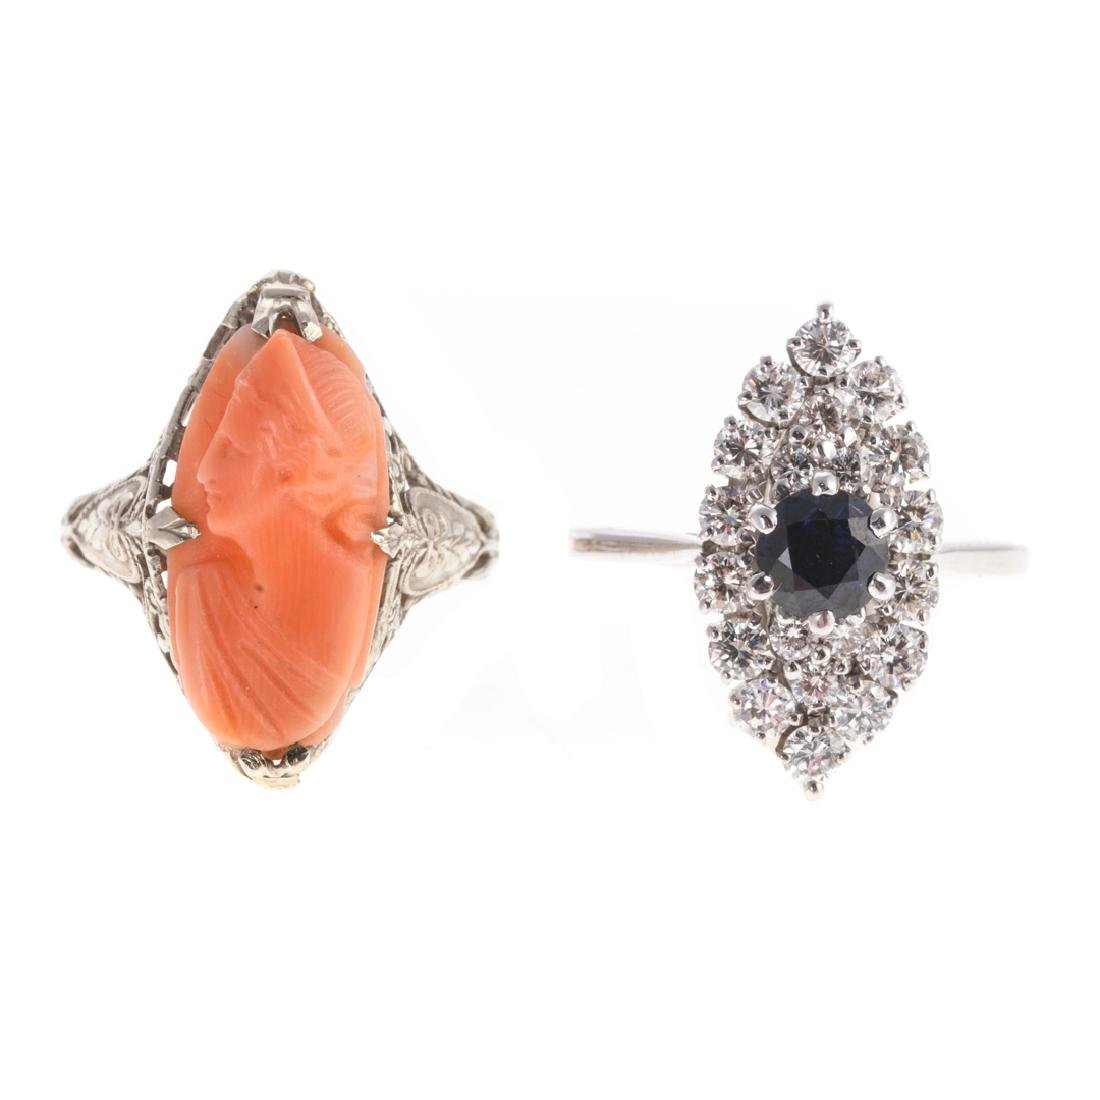 A Diamond & Sapphire Ring & Coral Ring in Gold